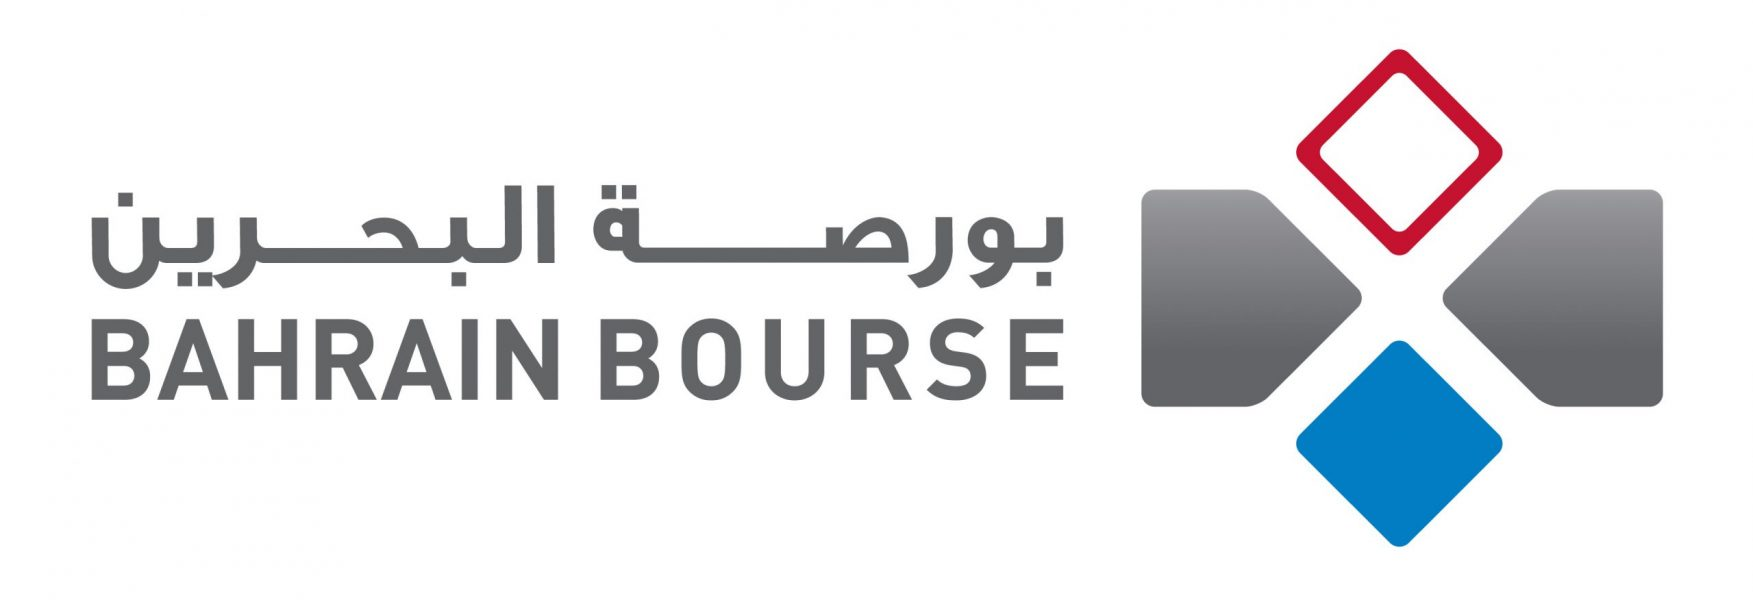 Bahrain-Bourse-Board-Approves-2015-Financial-Resul